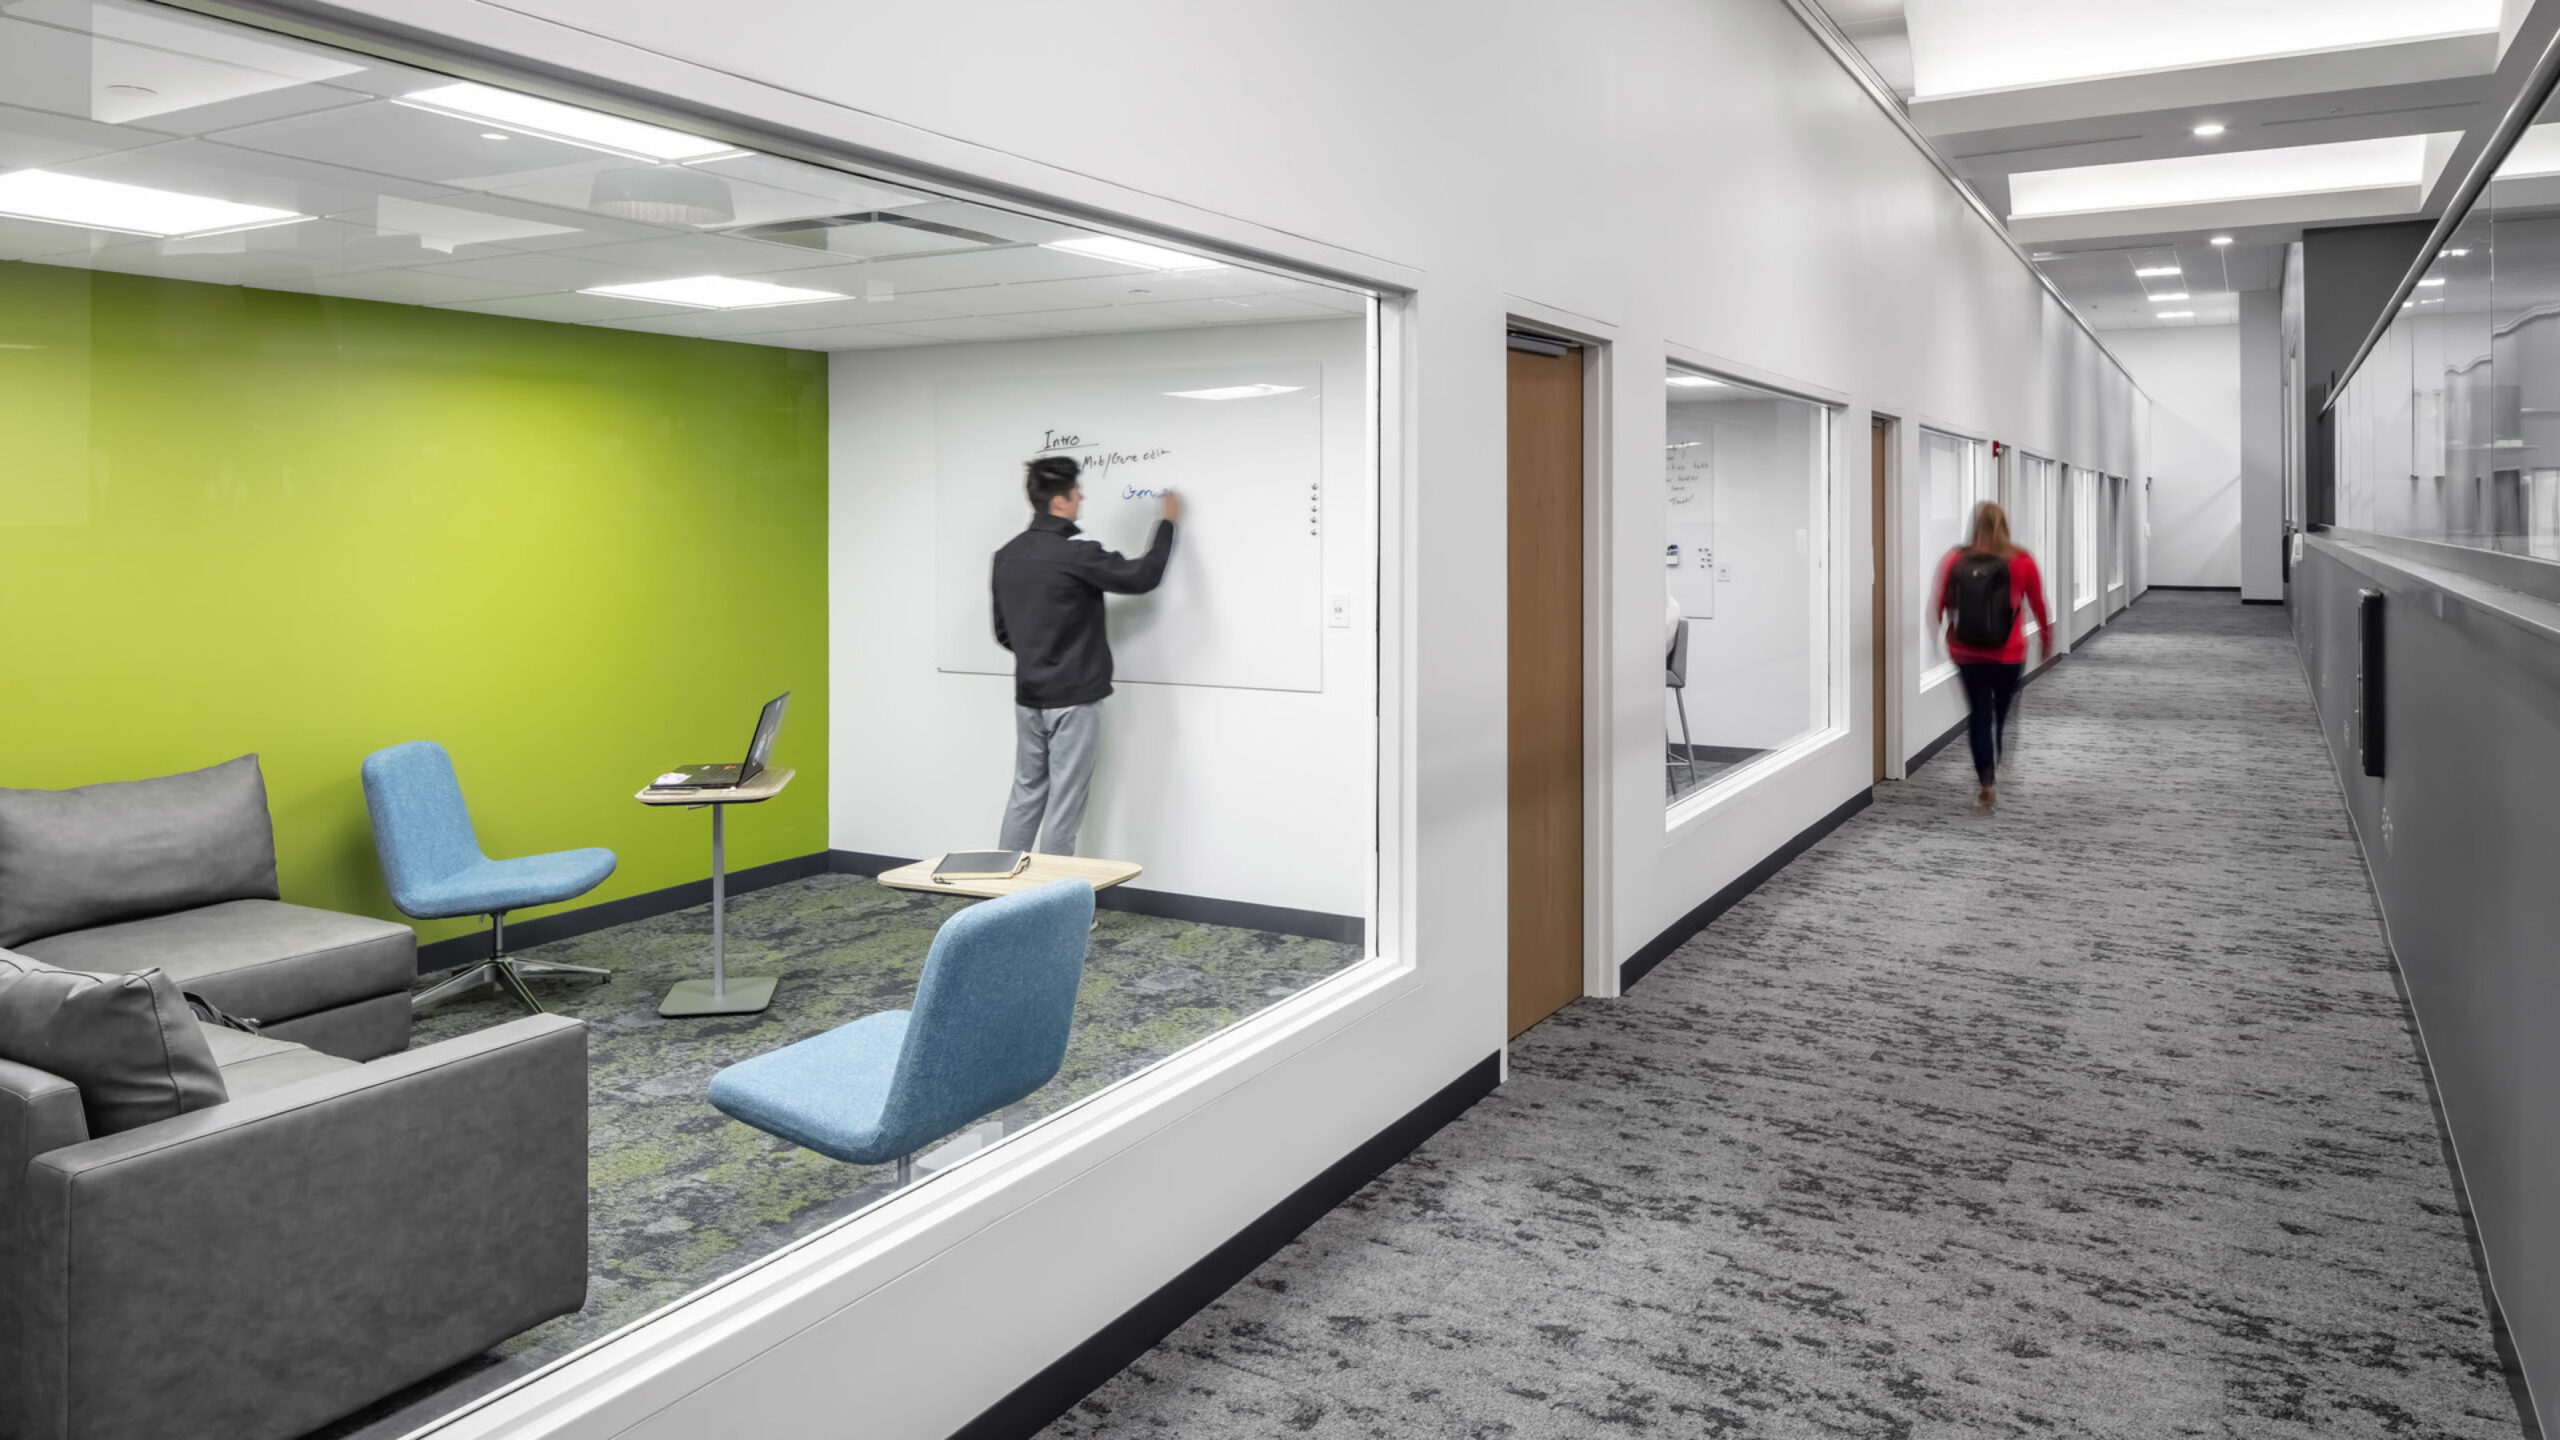 Glass-enclosed study room with a bright green accent wall.